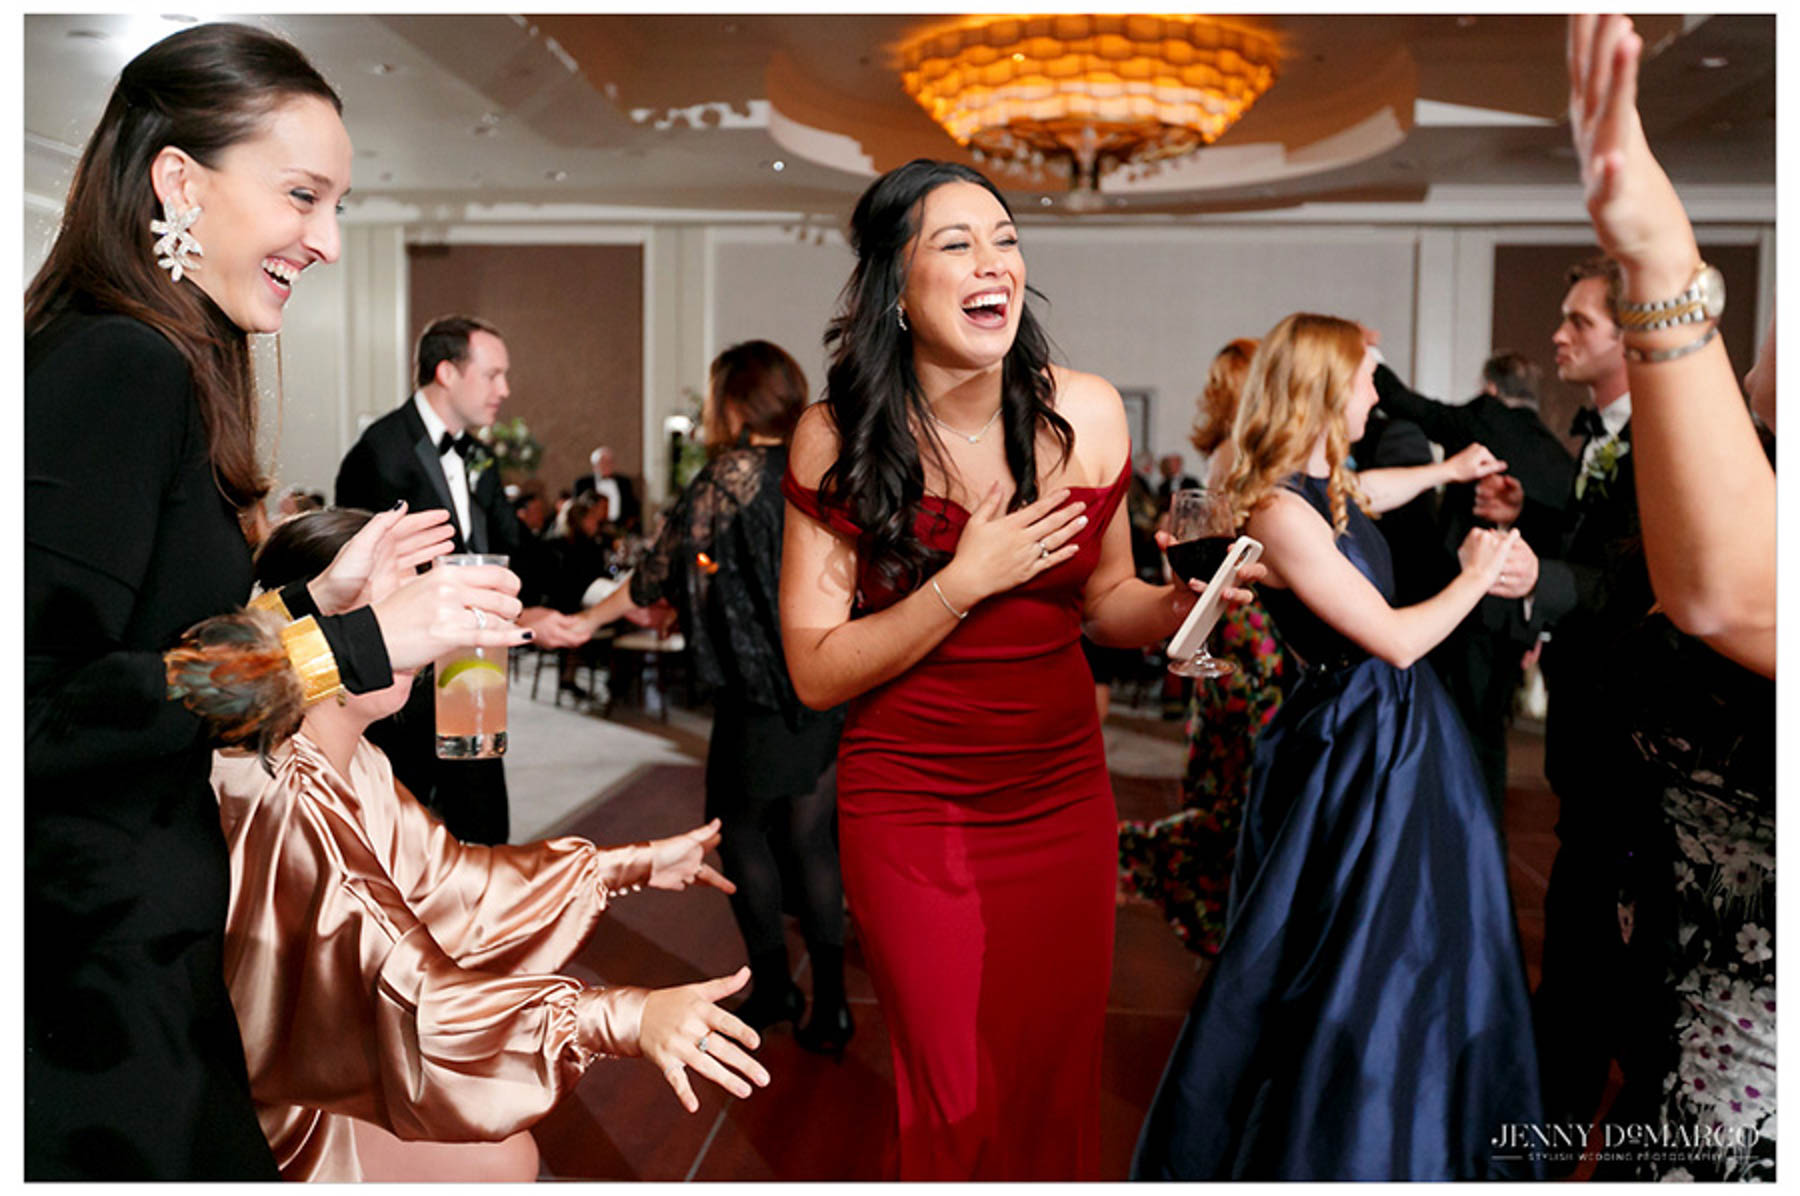 friend of couple dances in a red dress and laughs